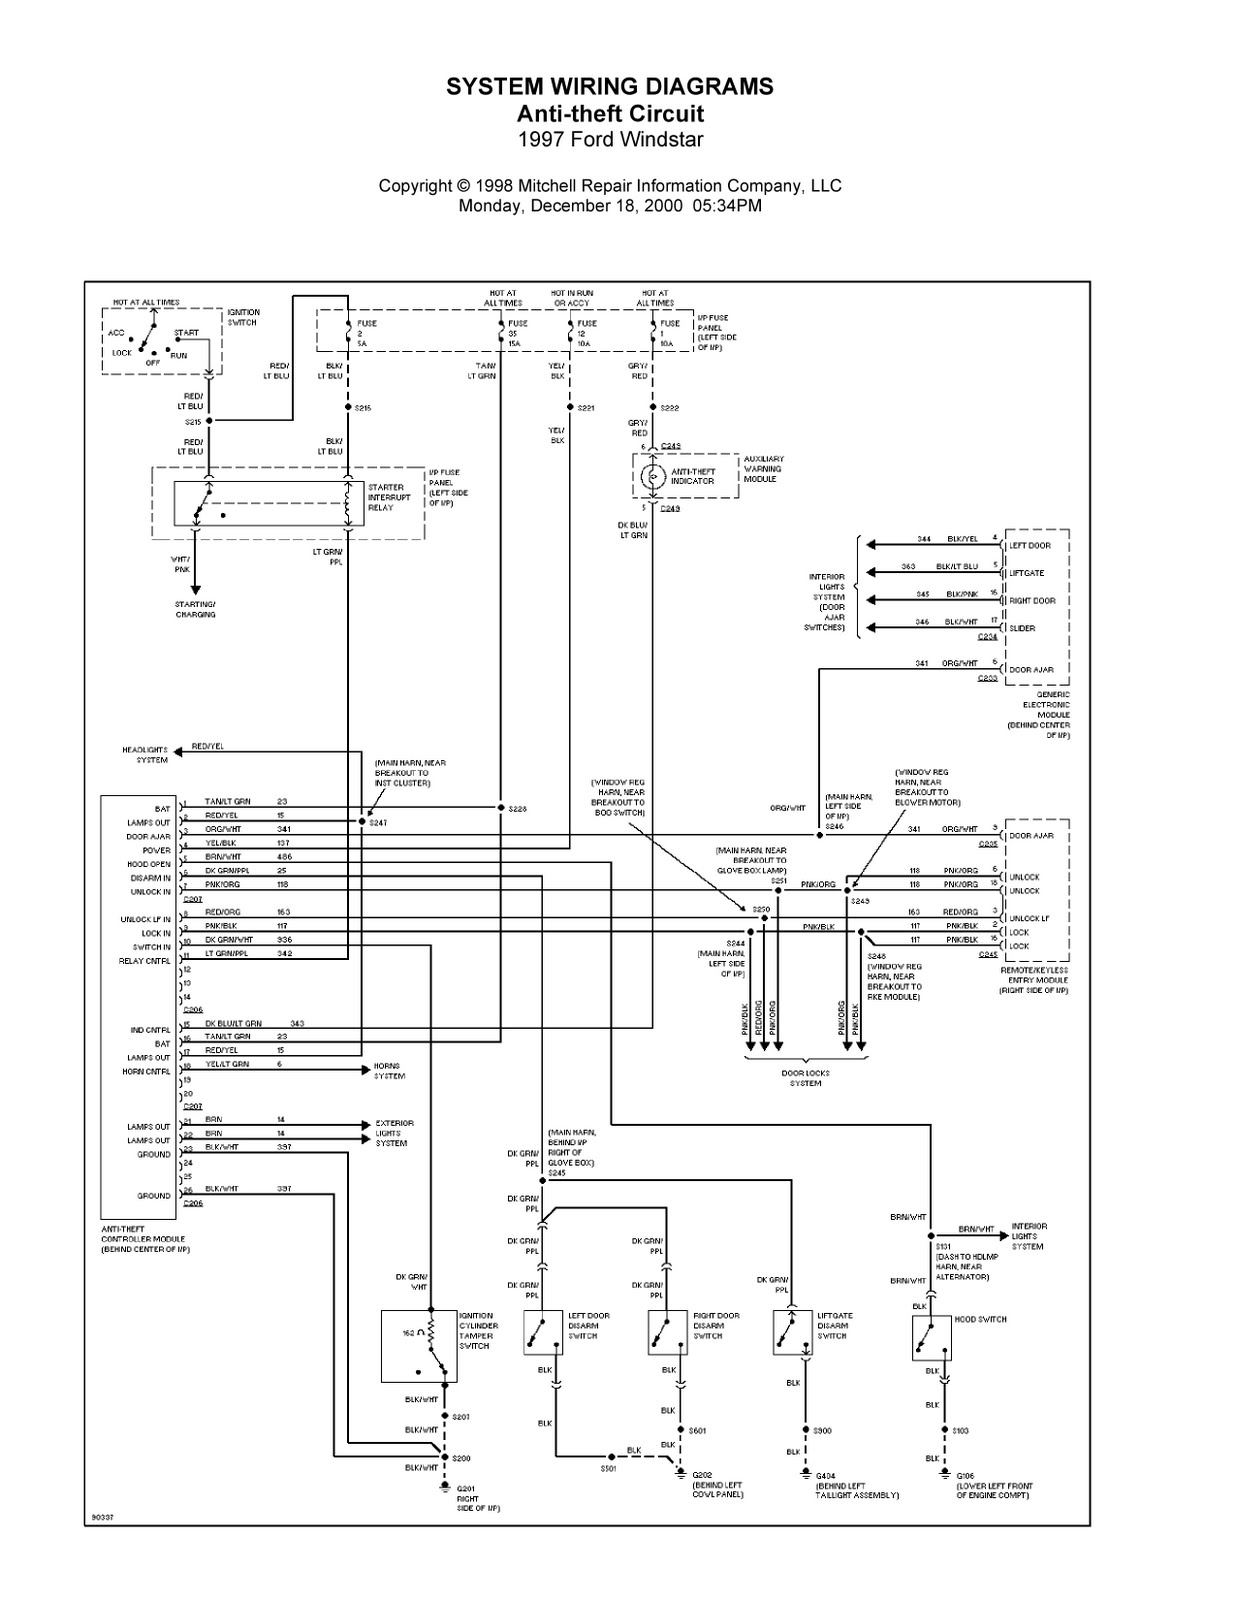 1997 windstar wiring diagram